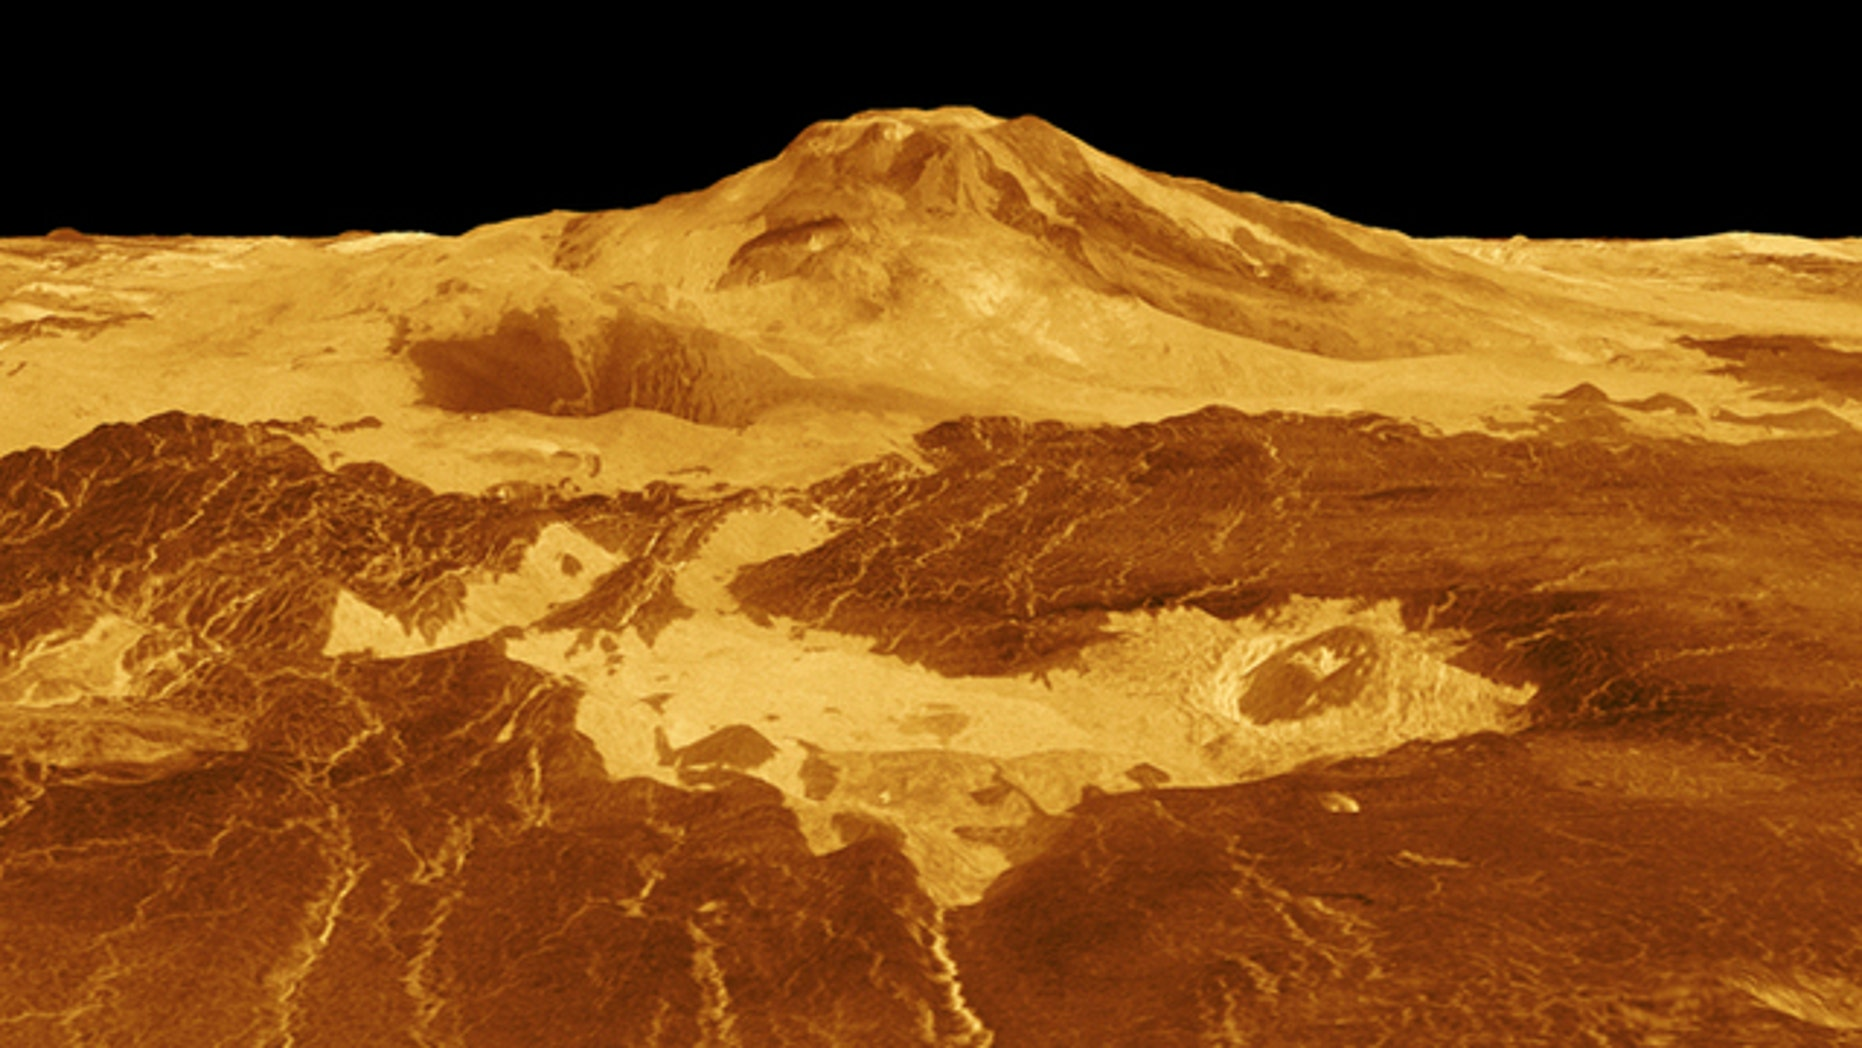 Lava flows extend for hundreds of miles across the fractured plains at the base of volcano Maat Mons, seen in this computer generated three-dimensional perspective of the surface of Venus.